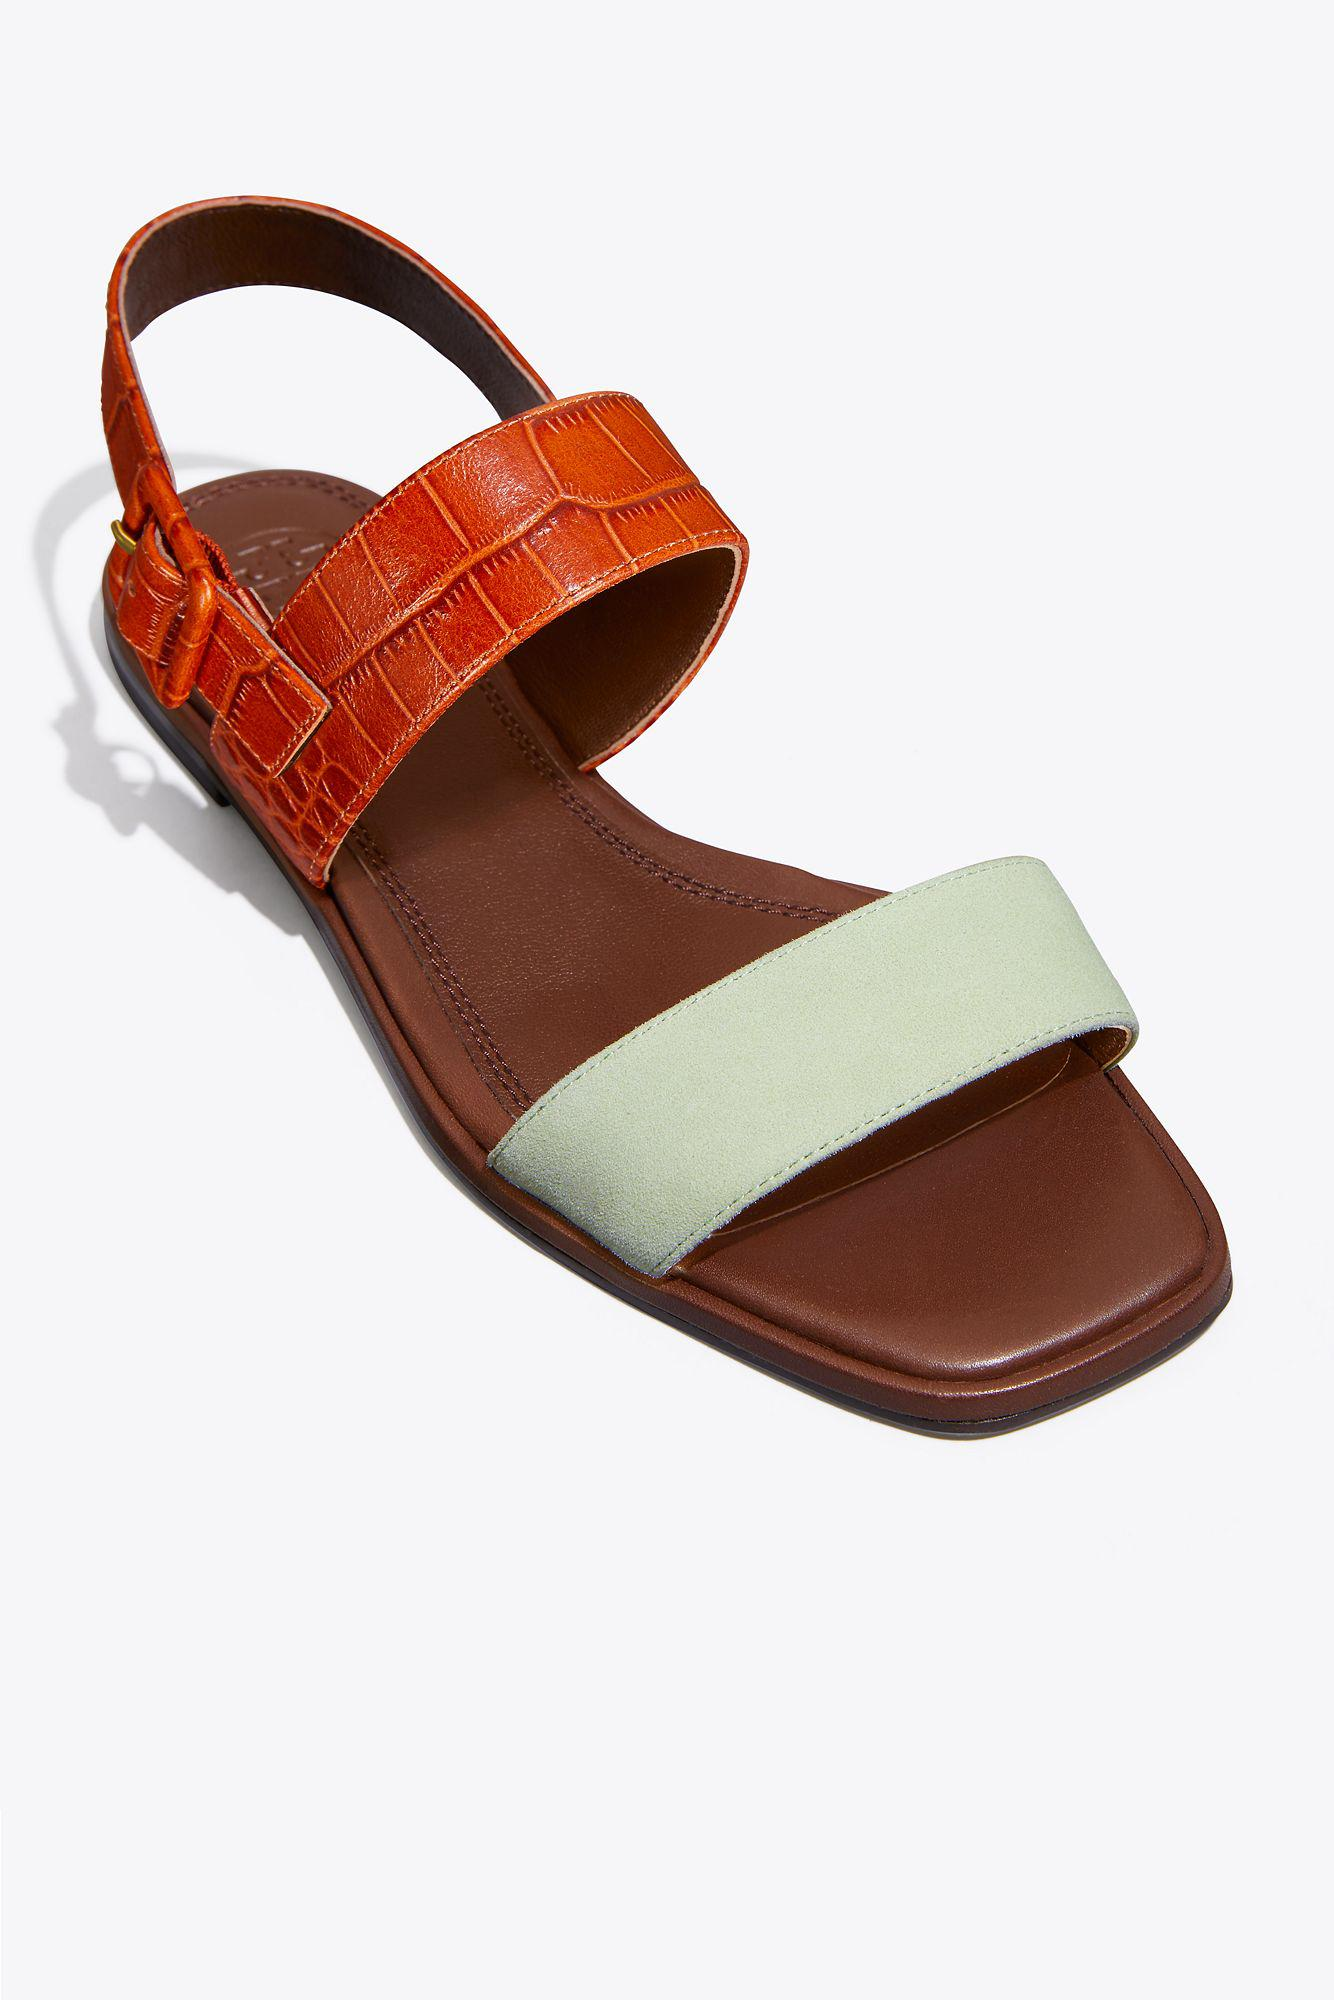 outlet choice discount cheap online DELANEY COLOR-BLOCK FLAT SANDAL 258 outlet cheap quality cheapest price cheap online free shipping amazing price KjcBihp